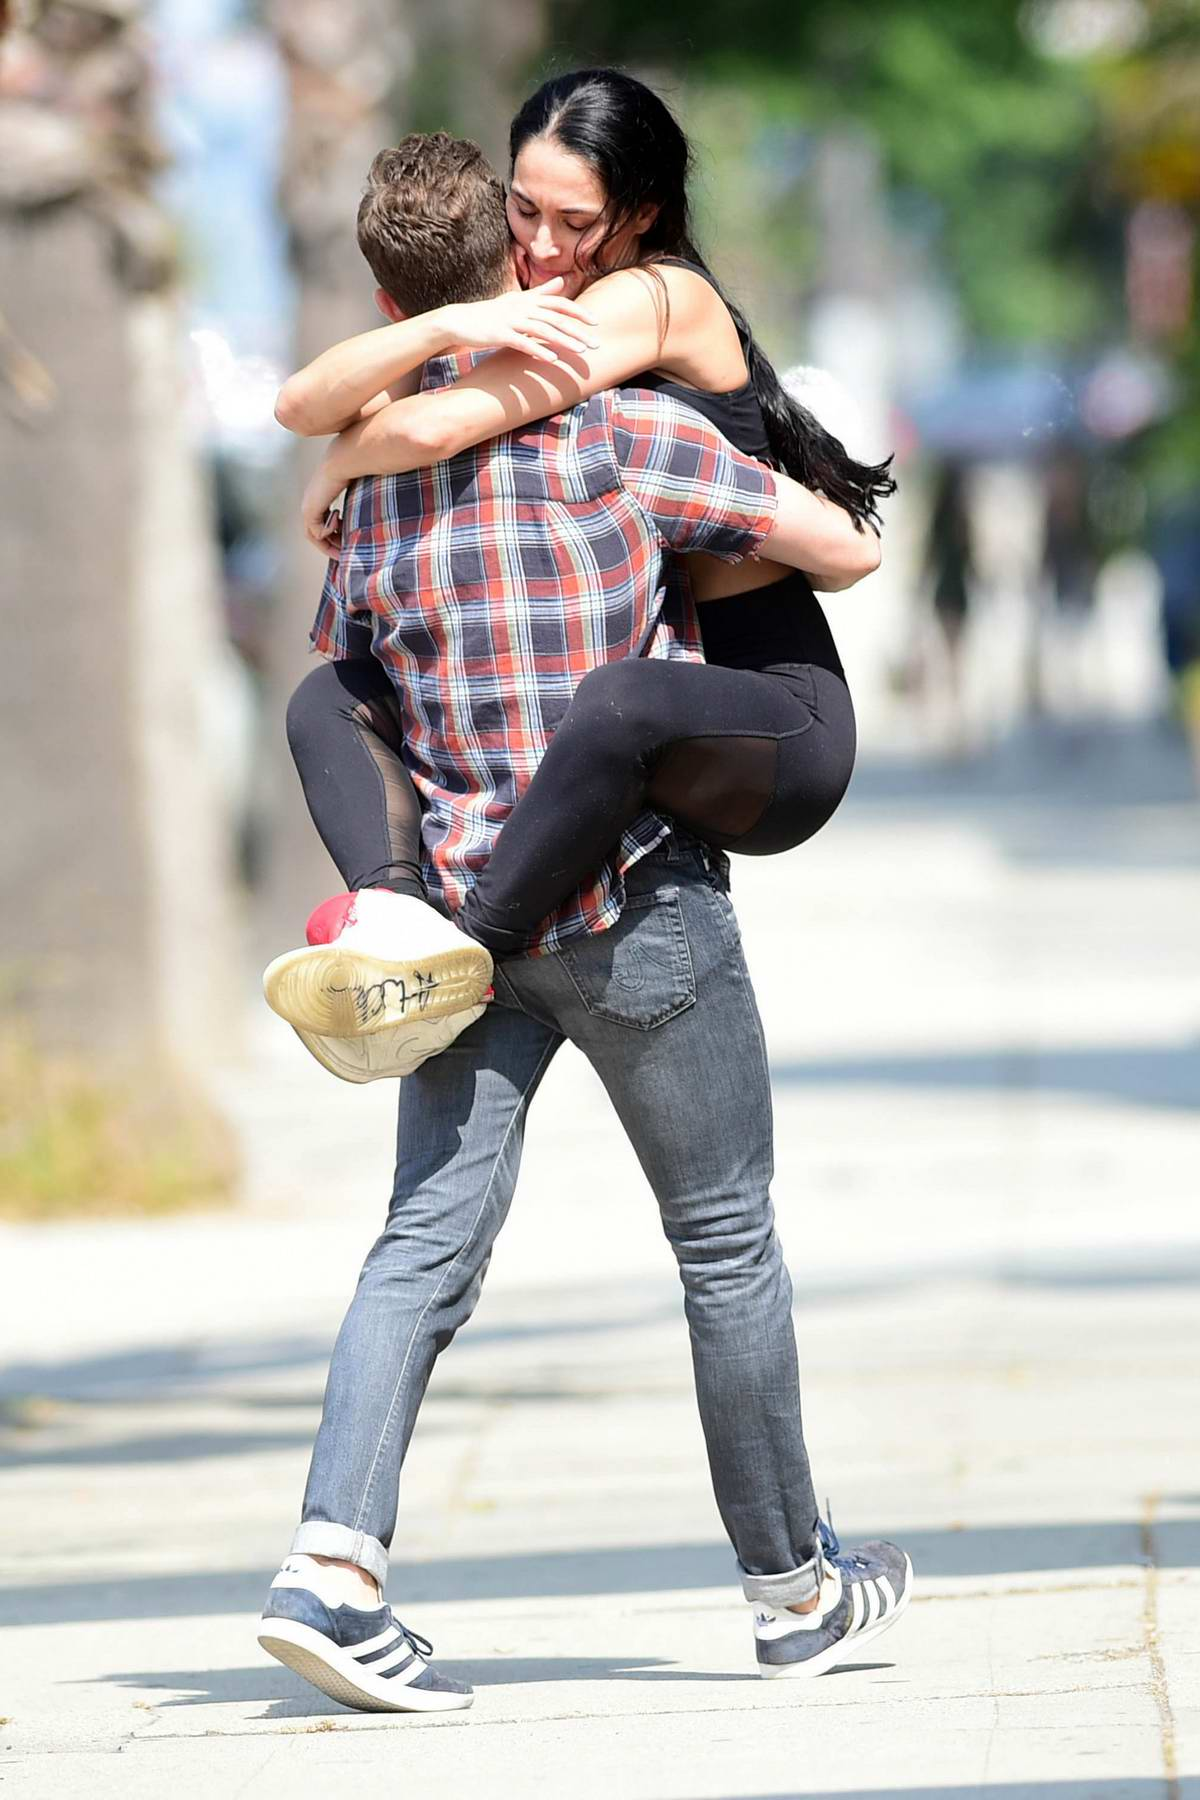 Nikki Bella packs on some serious PDA with boyfriend Artem Chigvintsev while out in Los Angeles